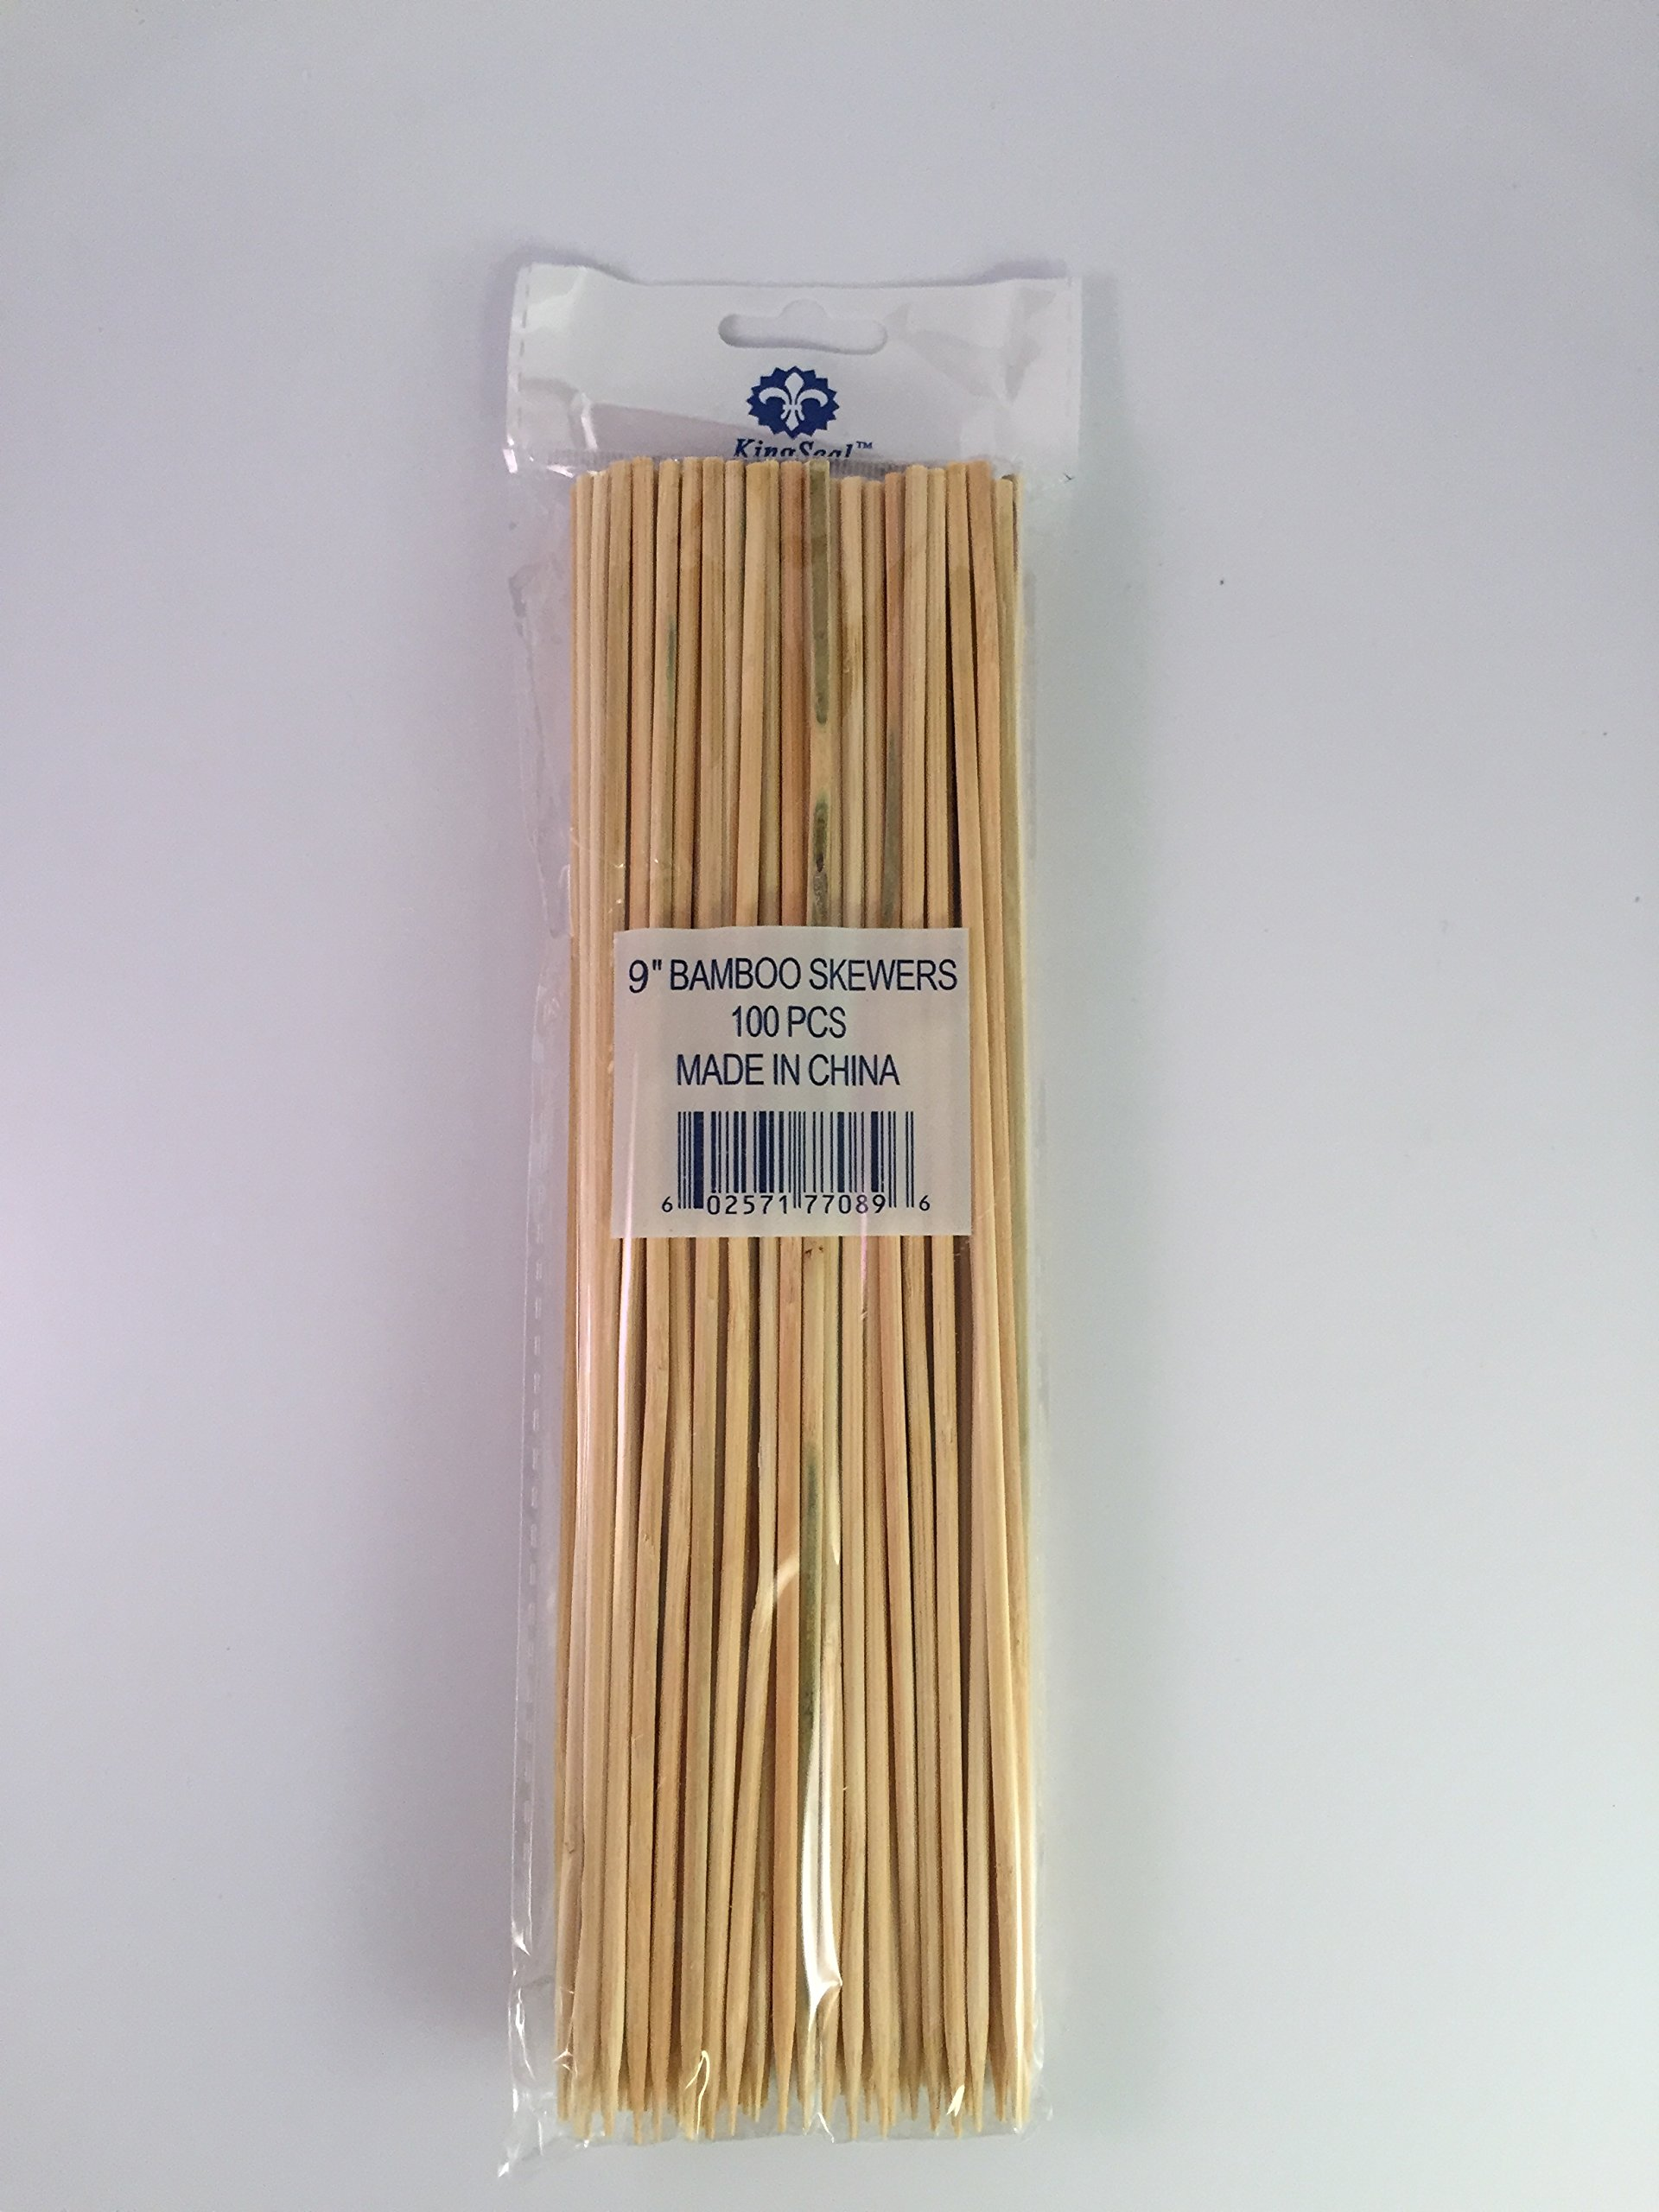 KingSeal Natural Bamboo Wood Skewers - 9 Inches, Master Case of 12/16/100 (19,200 pcs total)